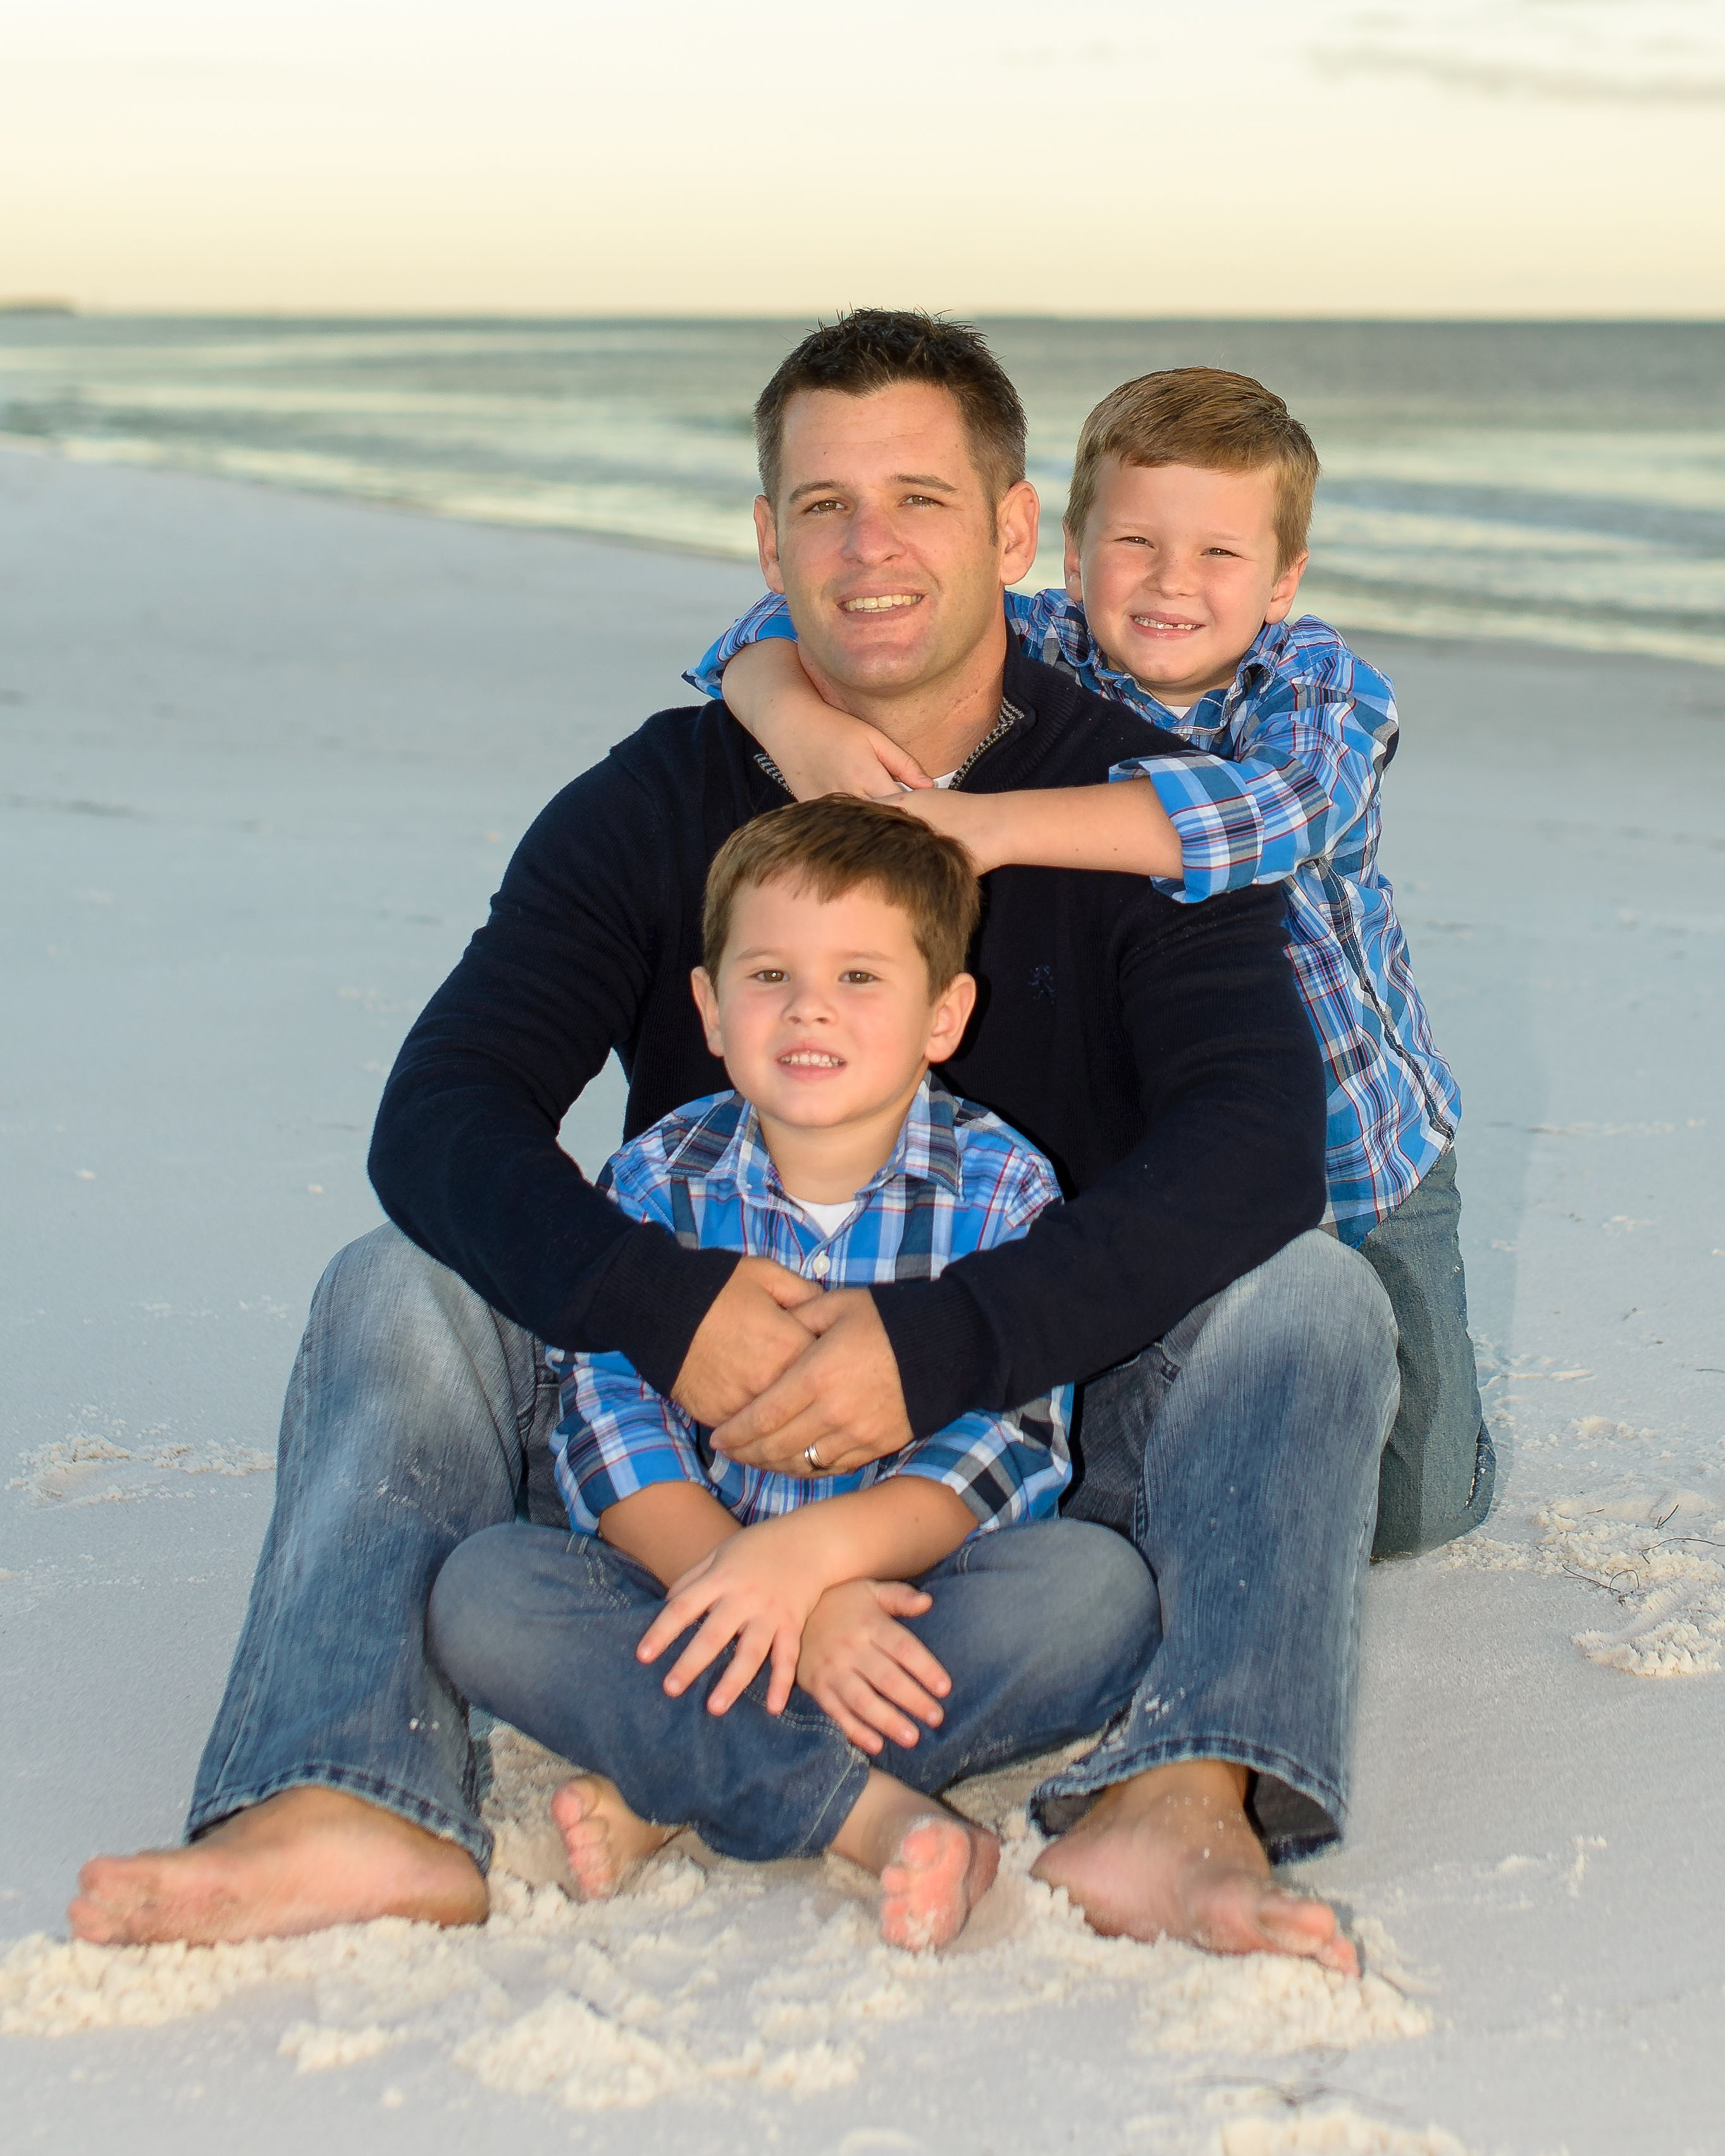 Father/Son Portraits! #DestinBeachPhotography #FatherSon #BeachPortraits #DestinFL #EmeraldCoast